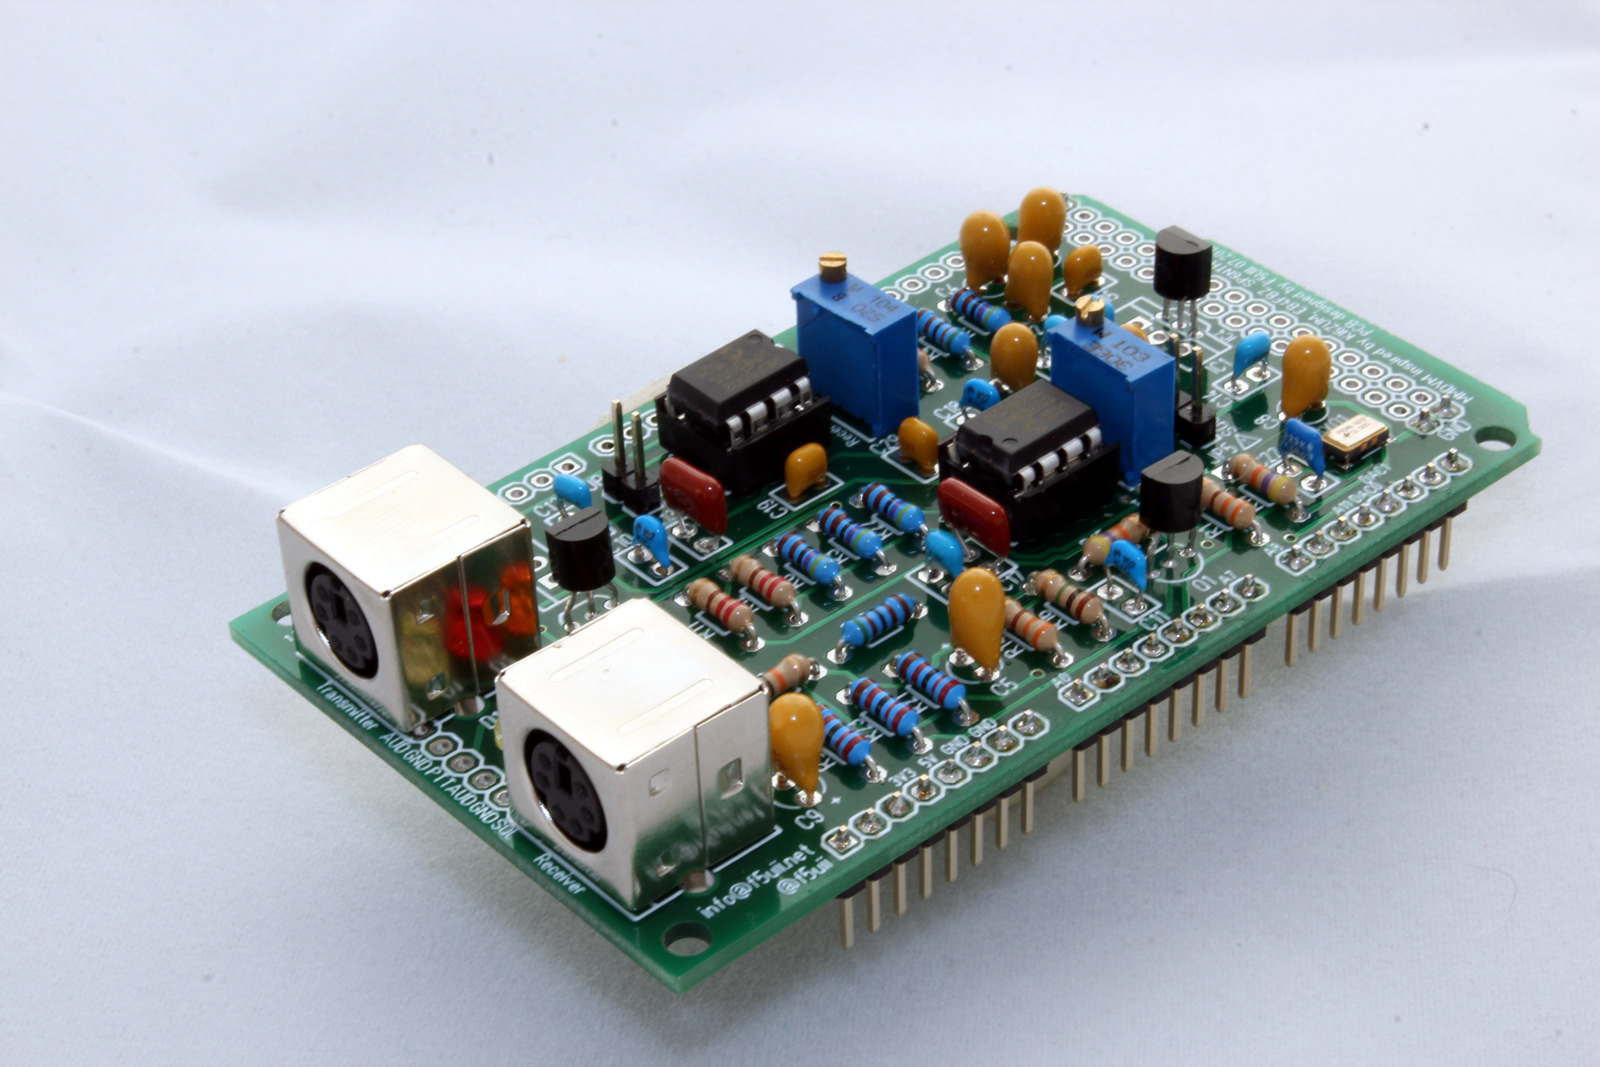 MMDVM board mounted with discrete components